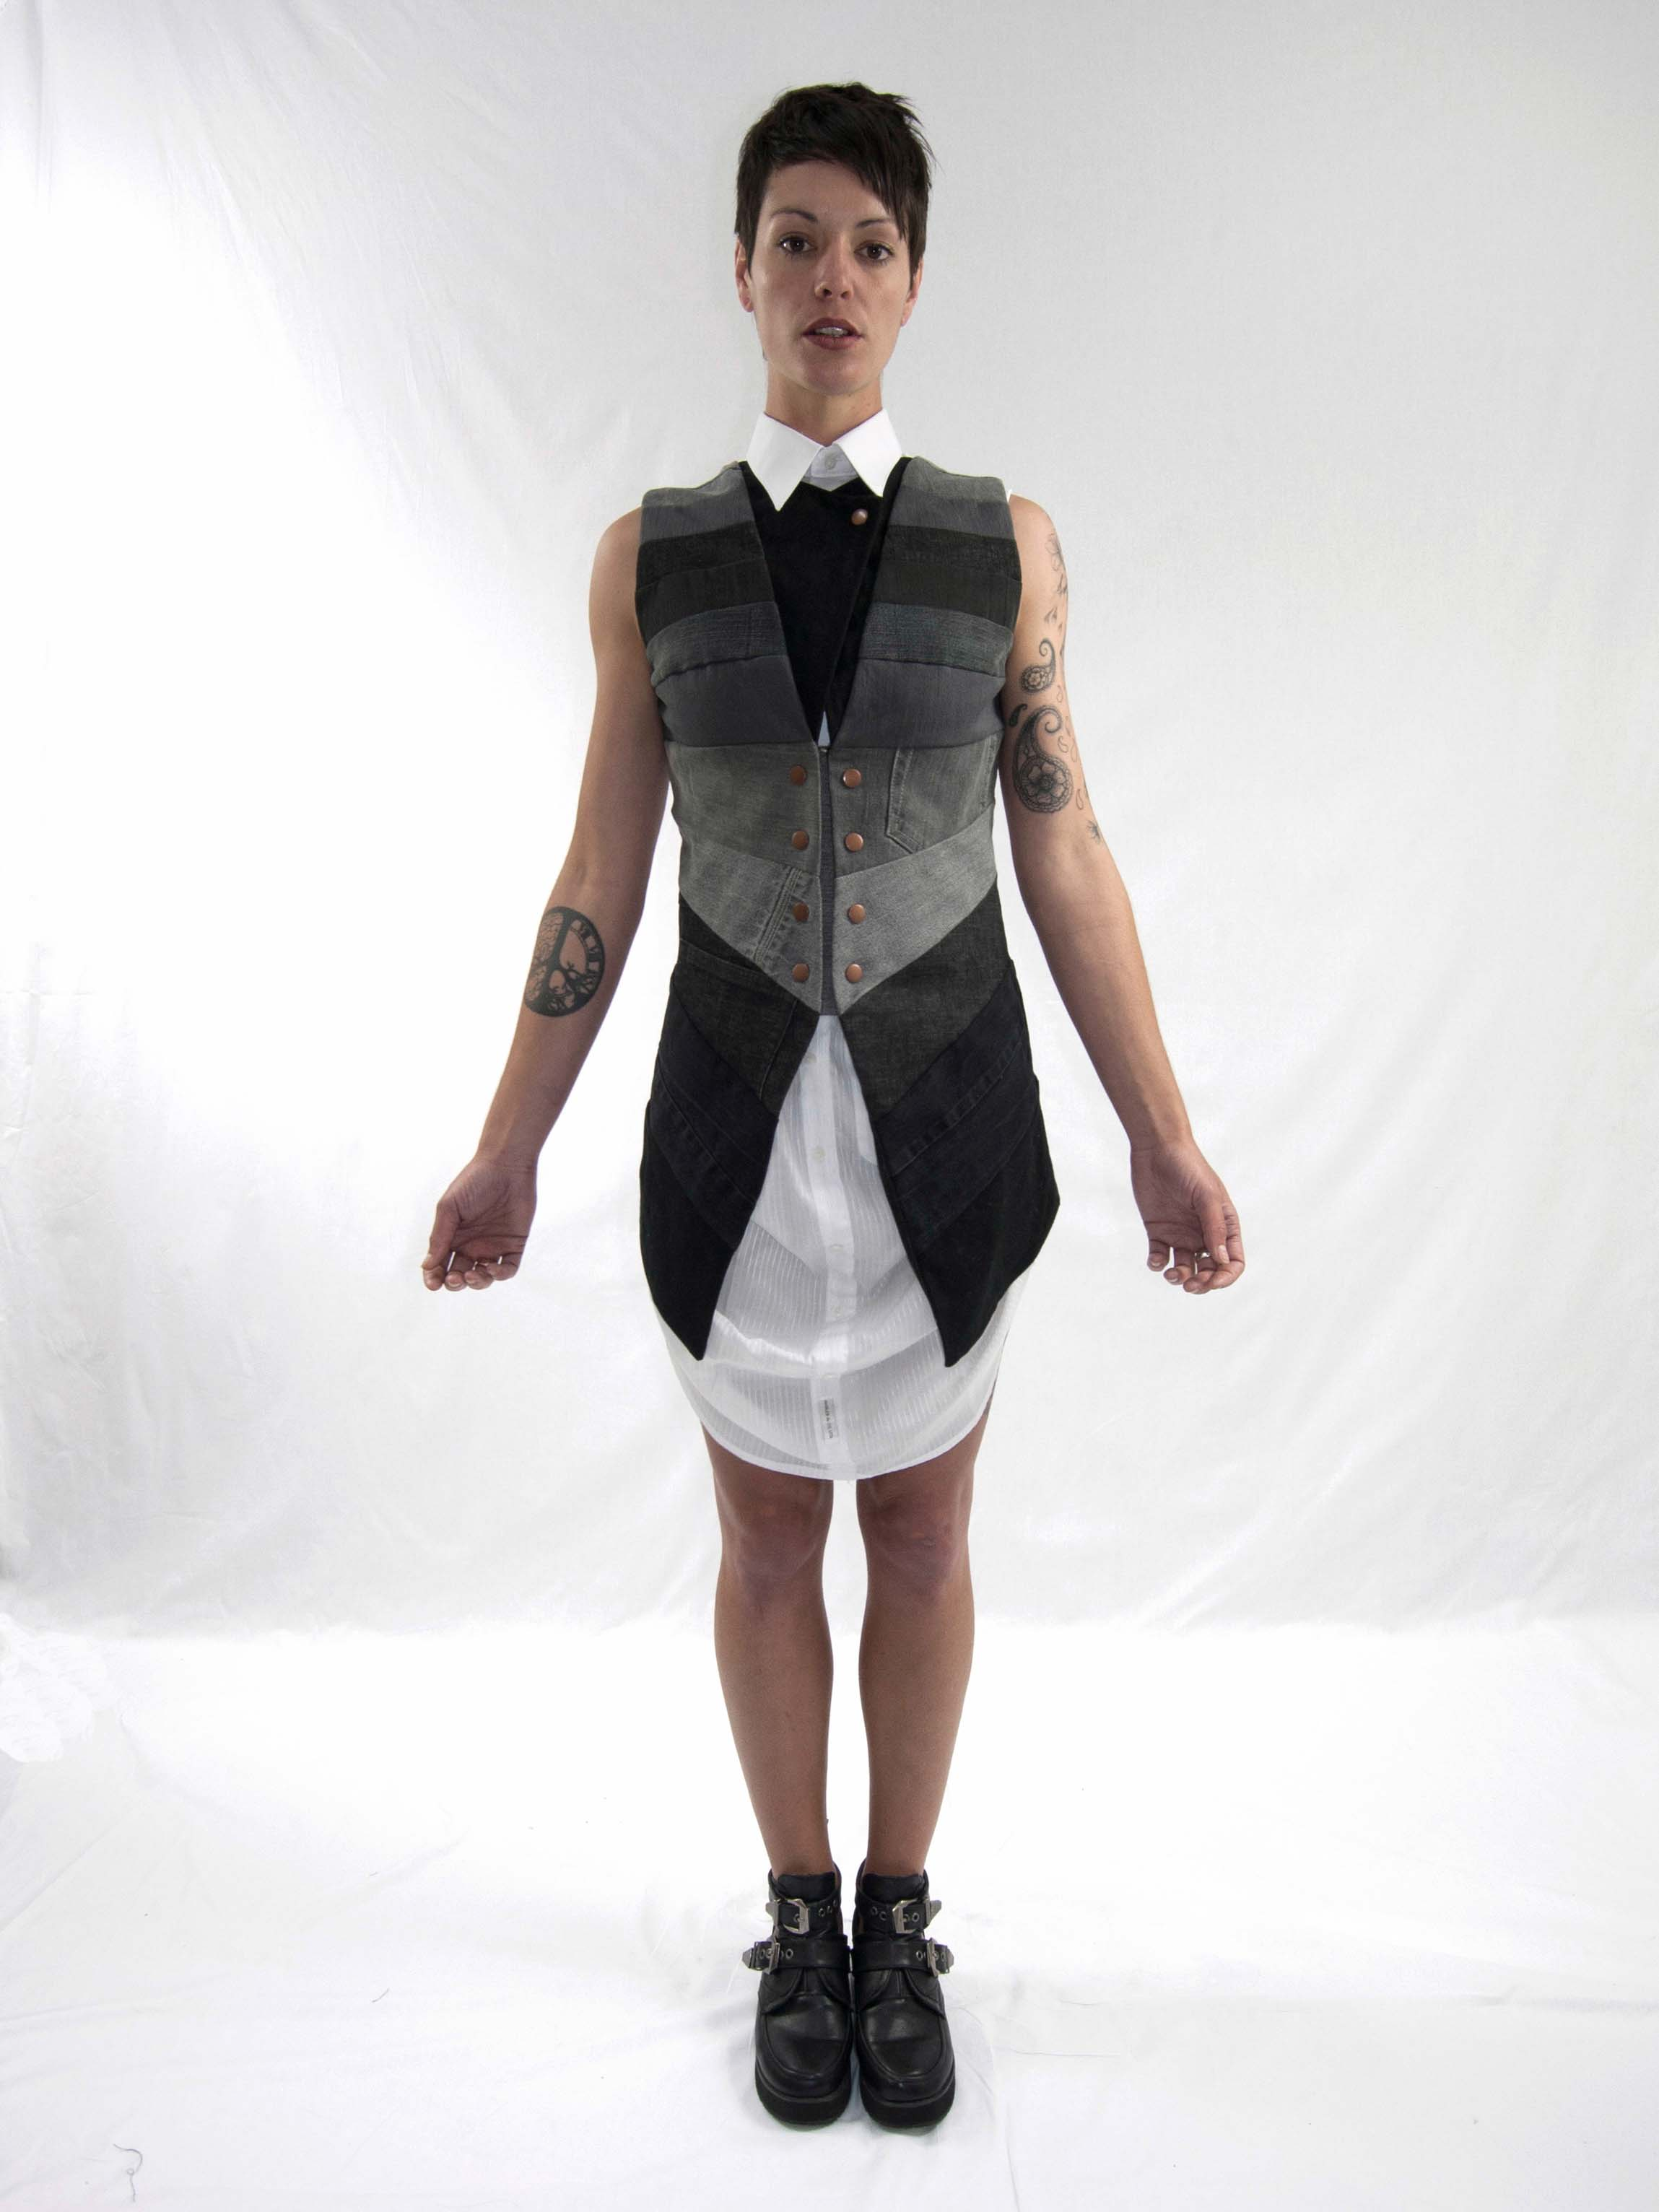 3perspective vest, gathered up dress